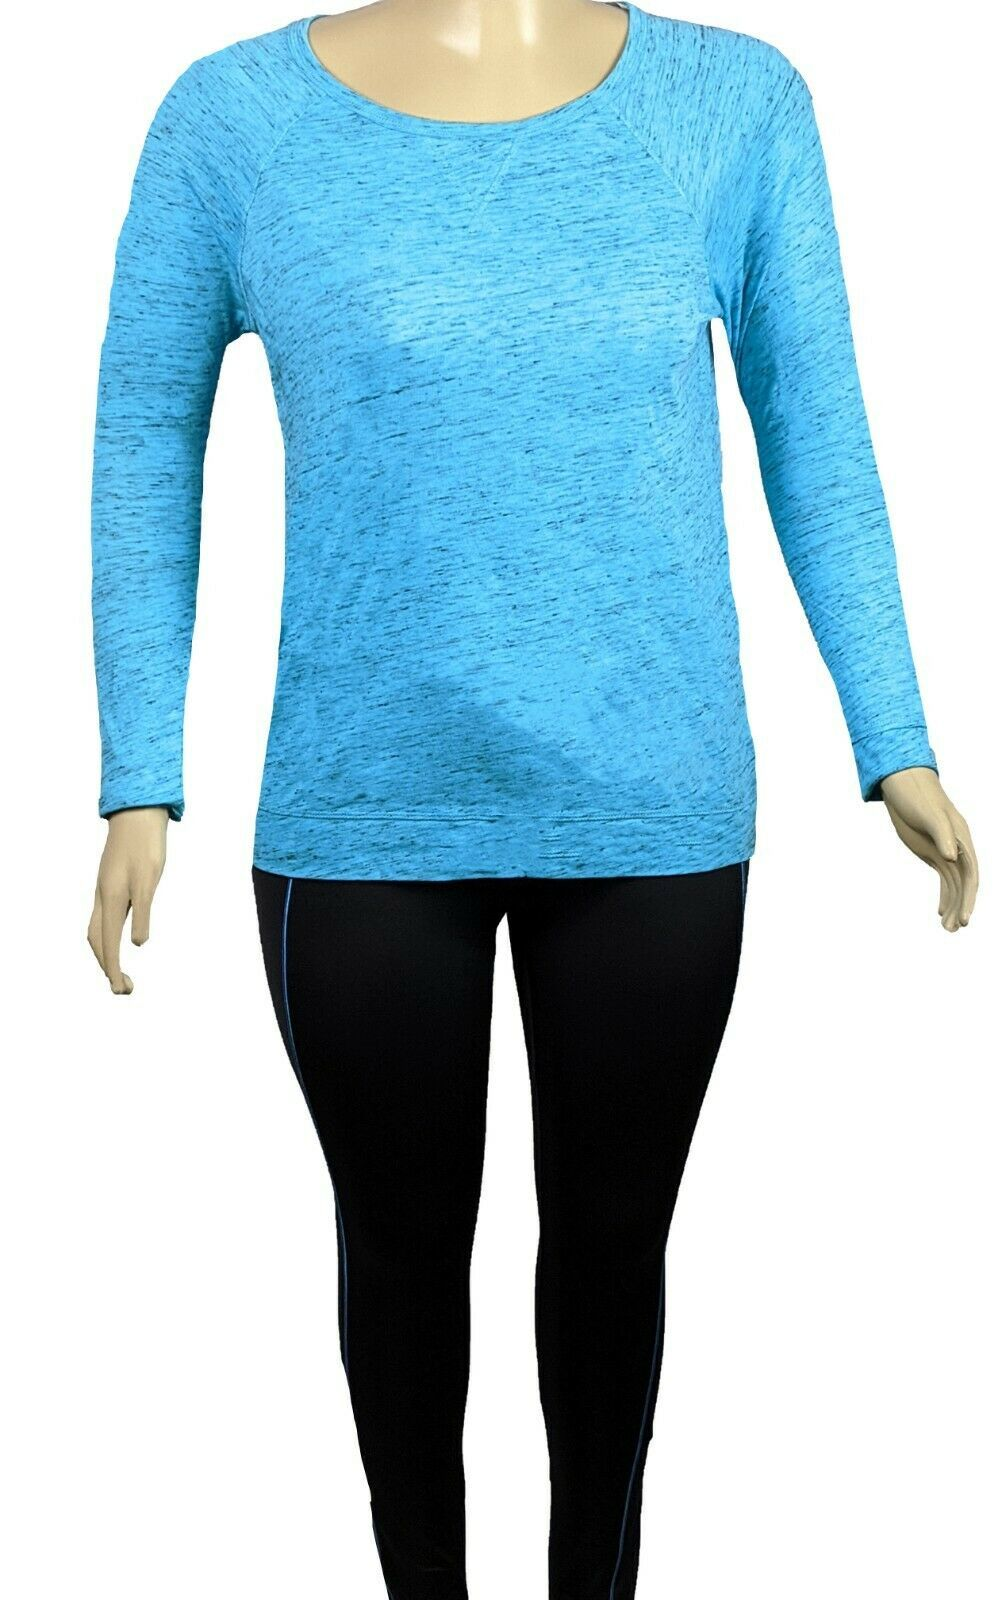 Primary image for Calvin Klein Long Sleeve Women Activewear Athletic Top Plus Size 0X 1X 2X 3X NWT